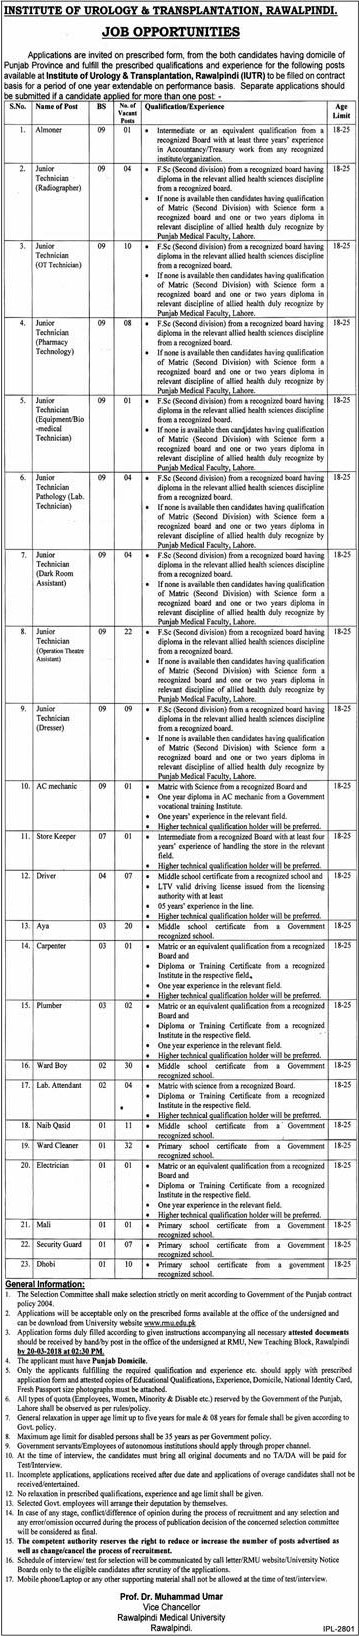 Jobs In Institute Of Urology & Transplantation Rawalpindi 03 Mar 2018